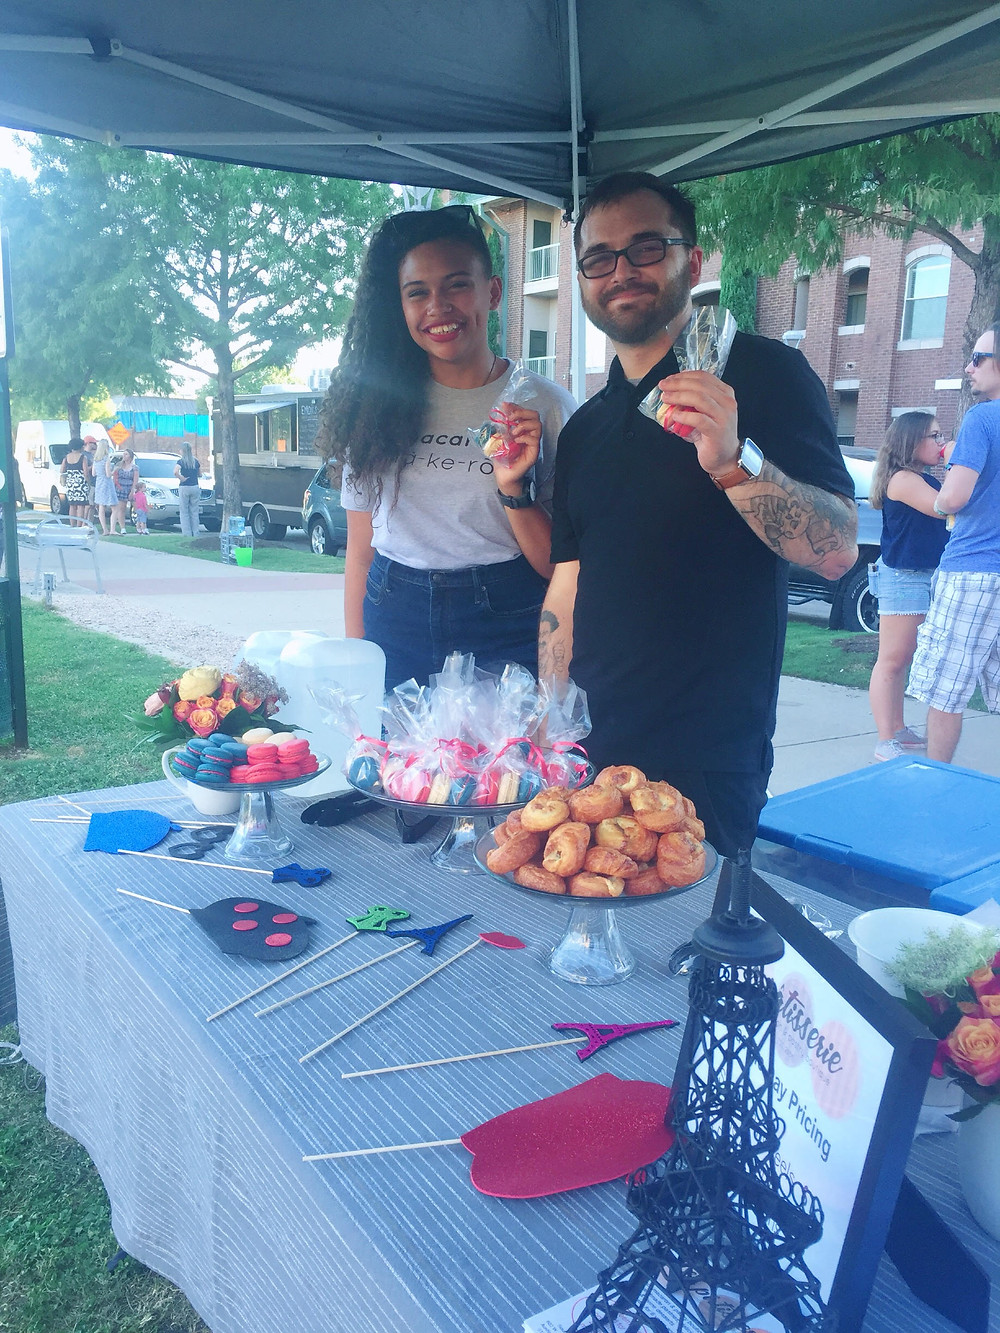 Our team serving macarons at Triangle Park